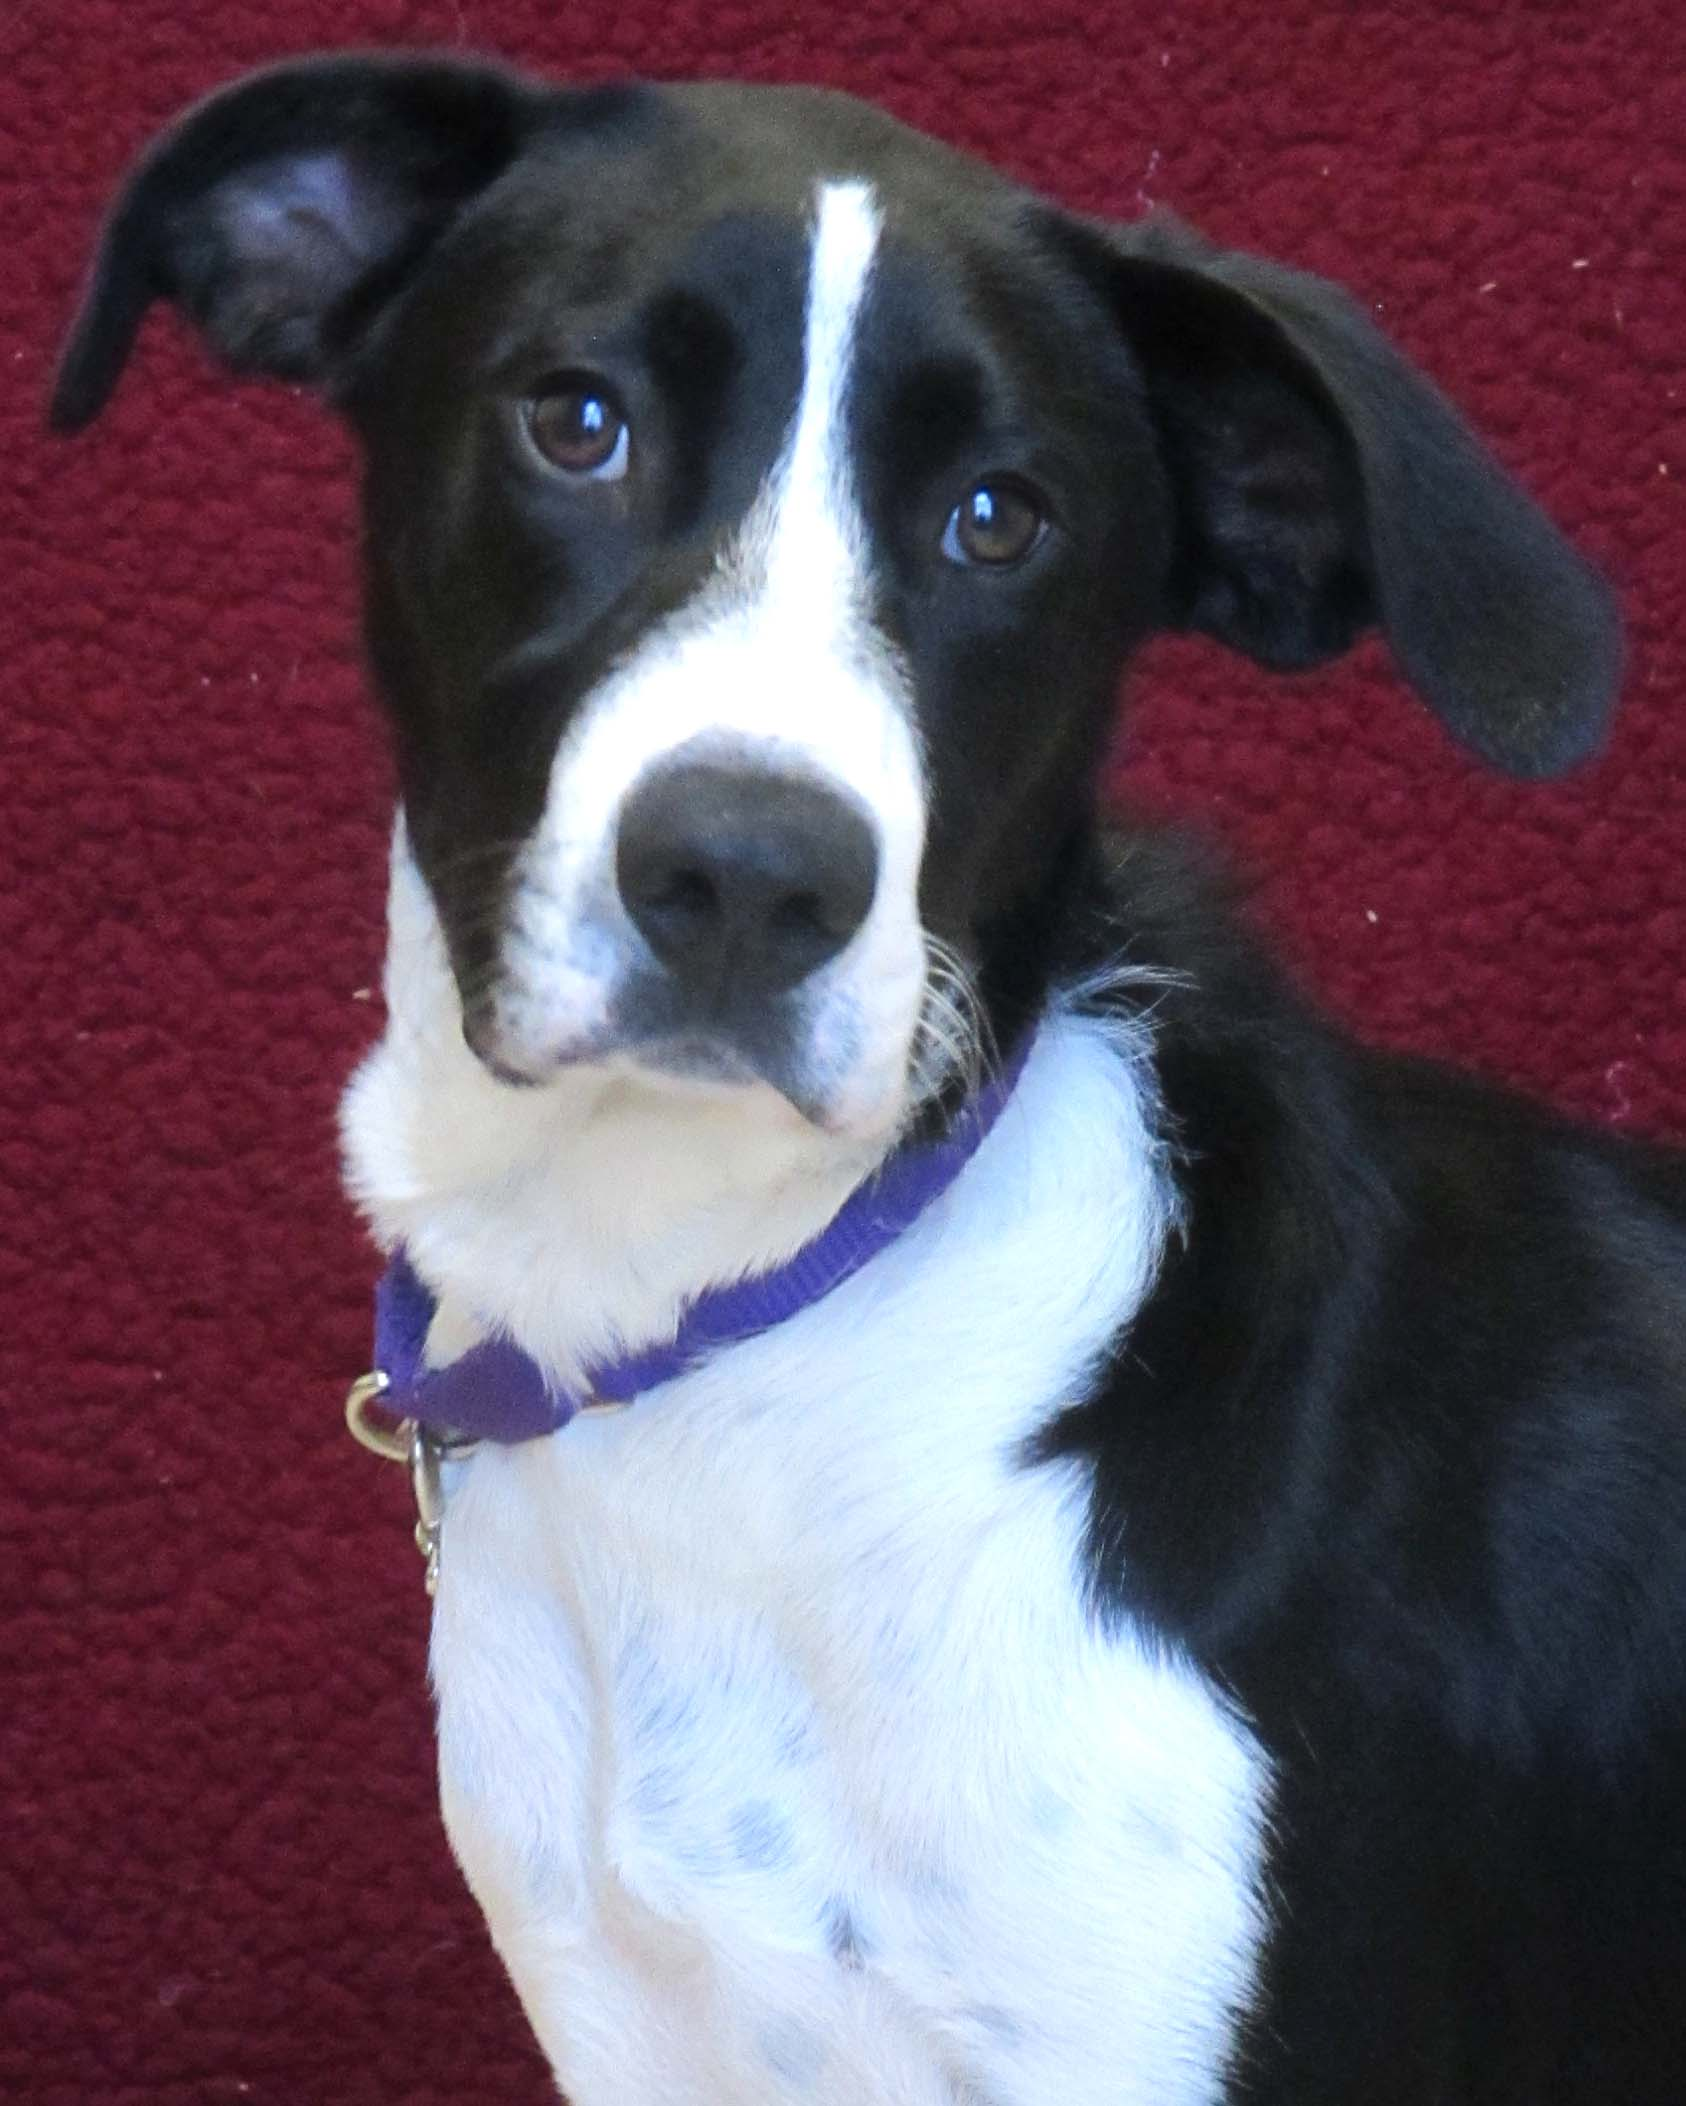 Myrna is a 6 month old Pointer and Terrier mix puppy. She really enjoys the company of people--including children. Myrna would do best being the only pet in the home as she is a little shy.